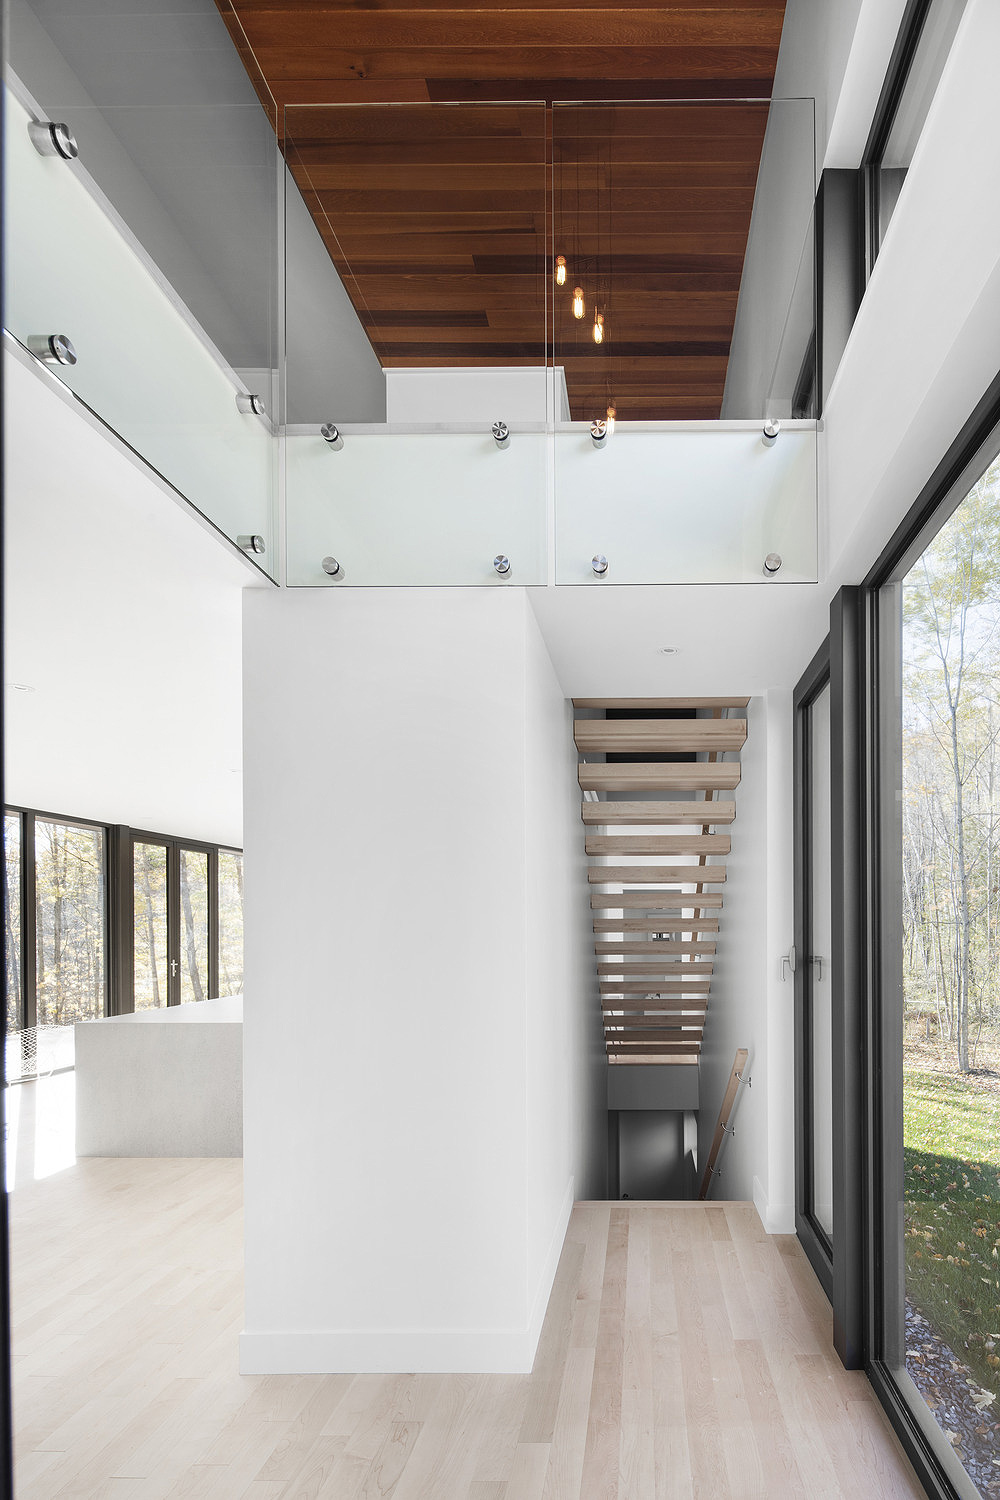 lk-house-bourgeois-lechasseur-architects (2)